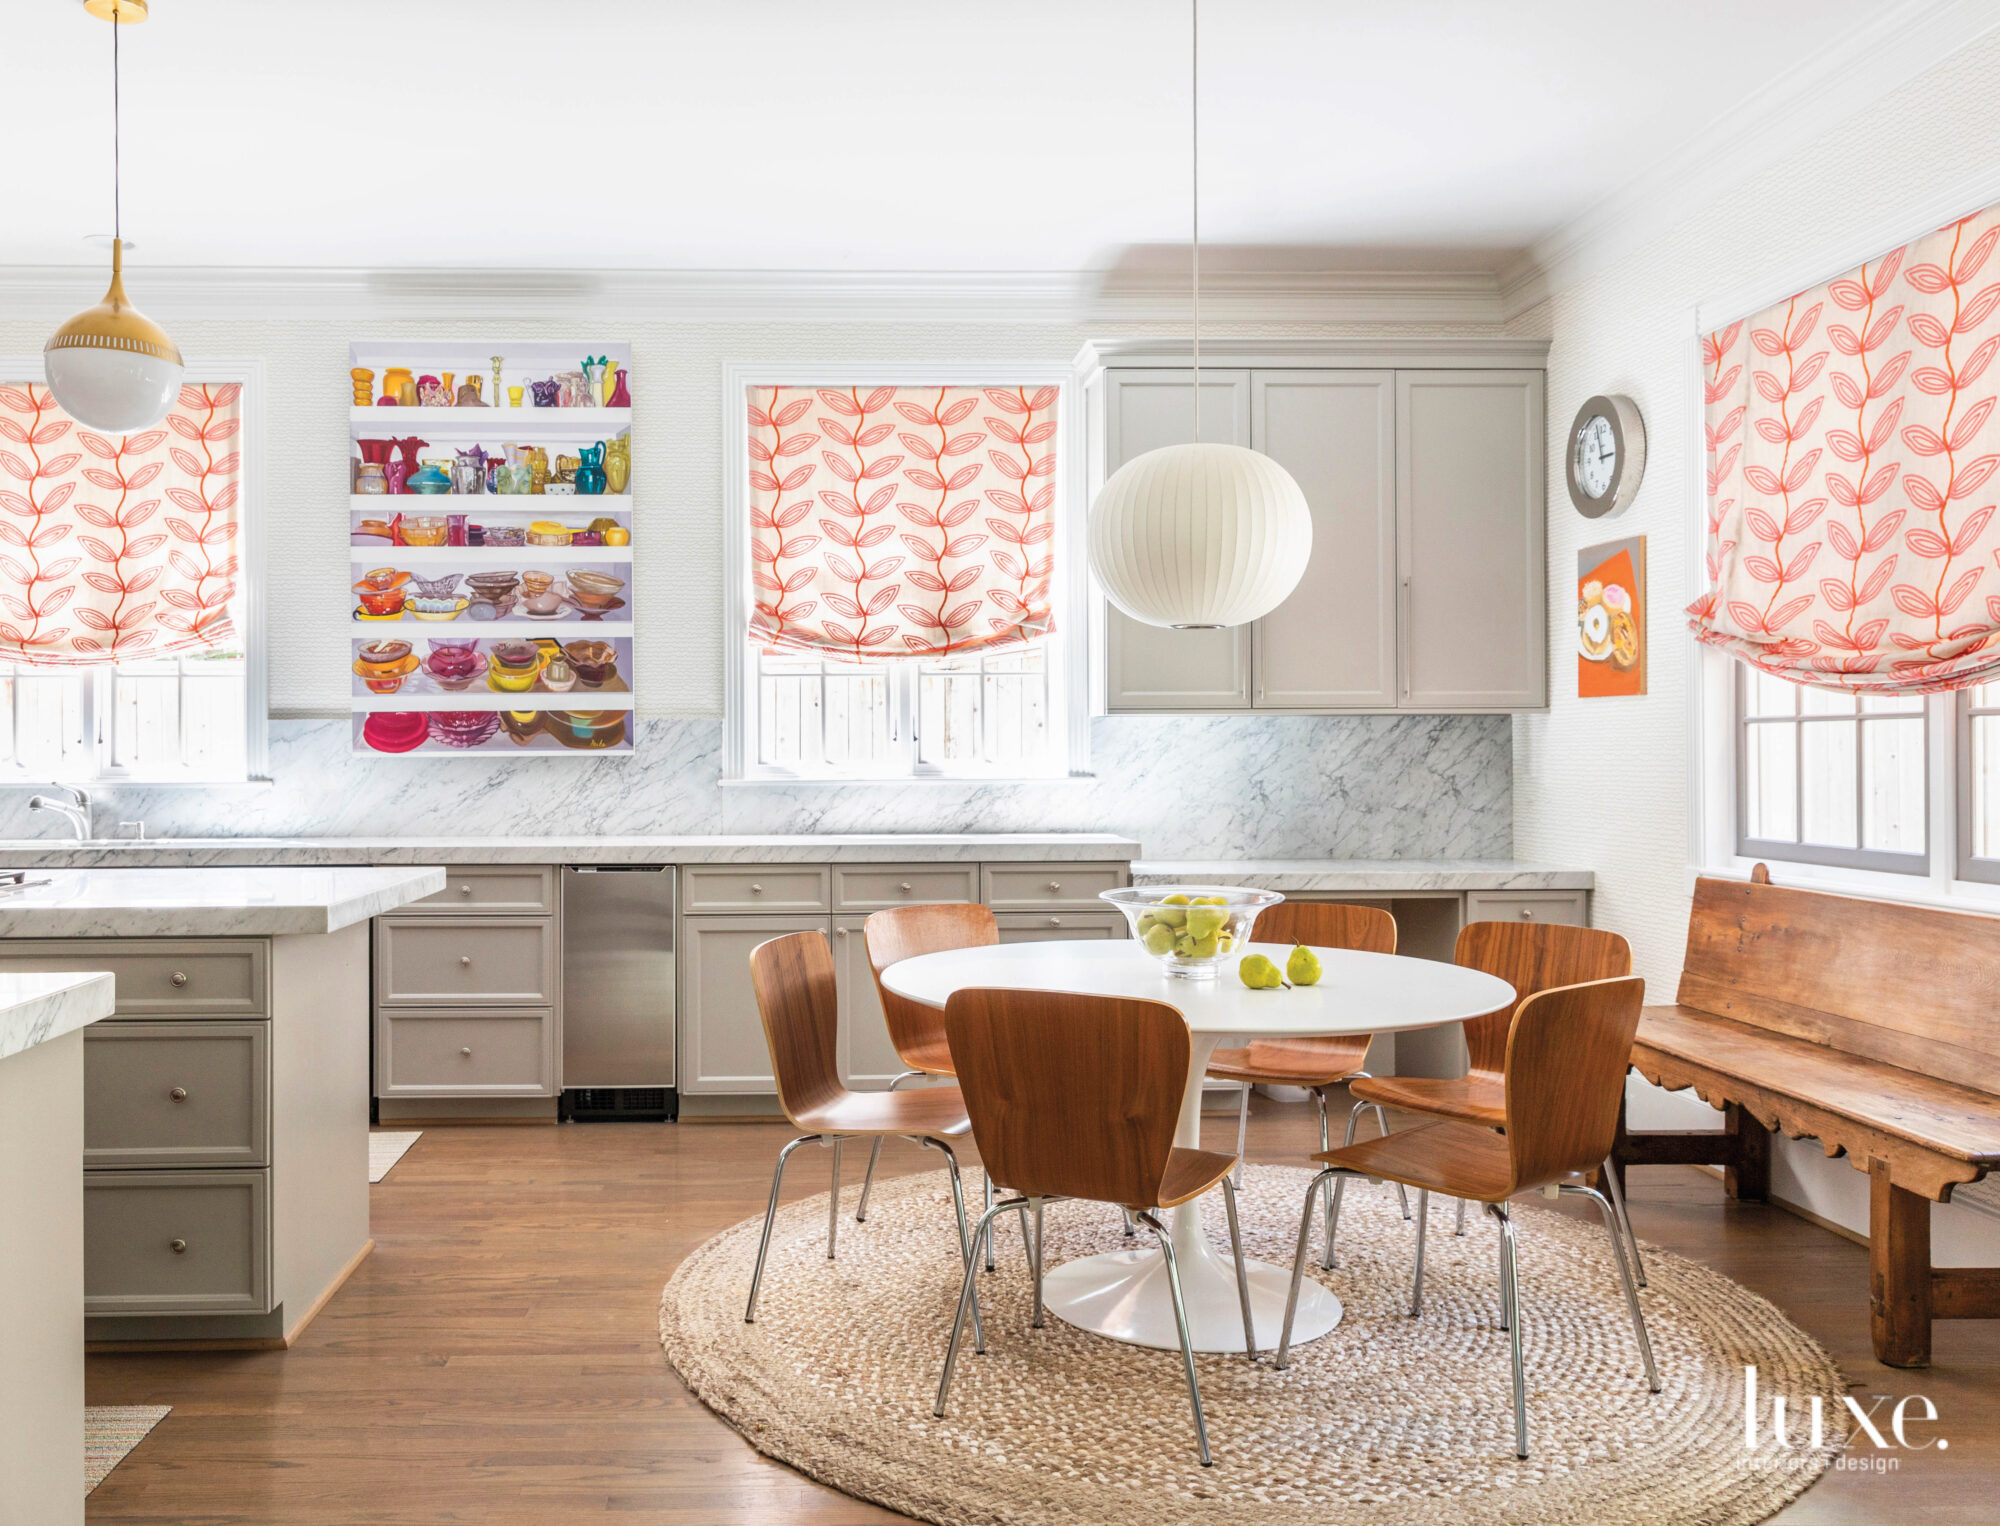 Round dining table in open kitchen full of colorful art